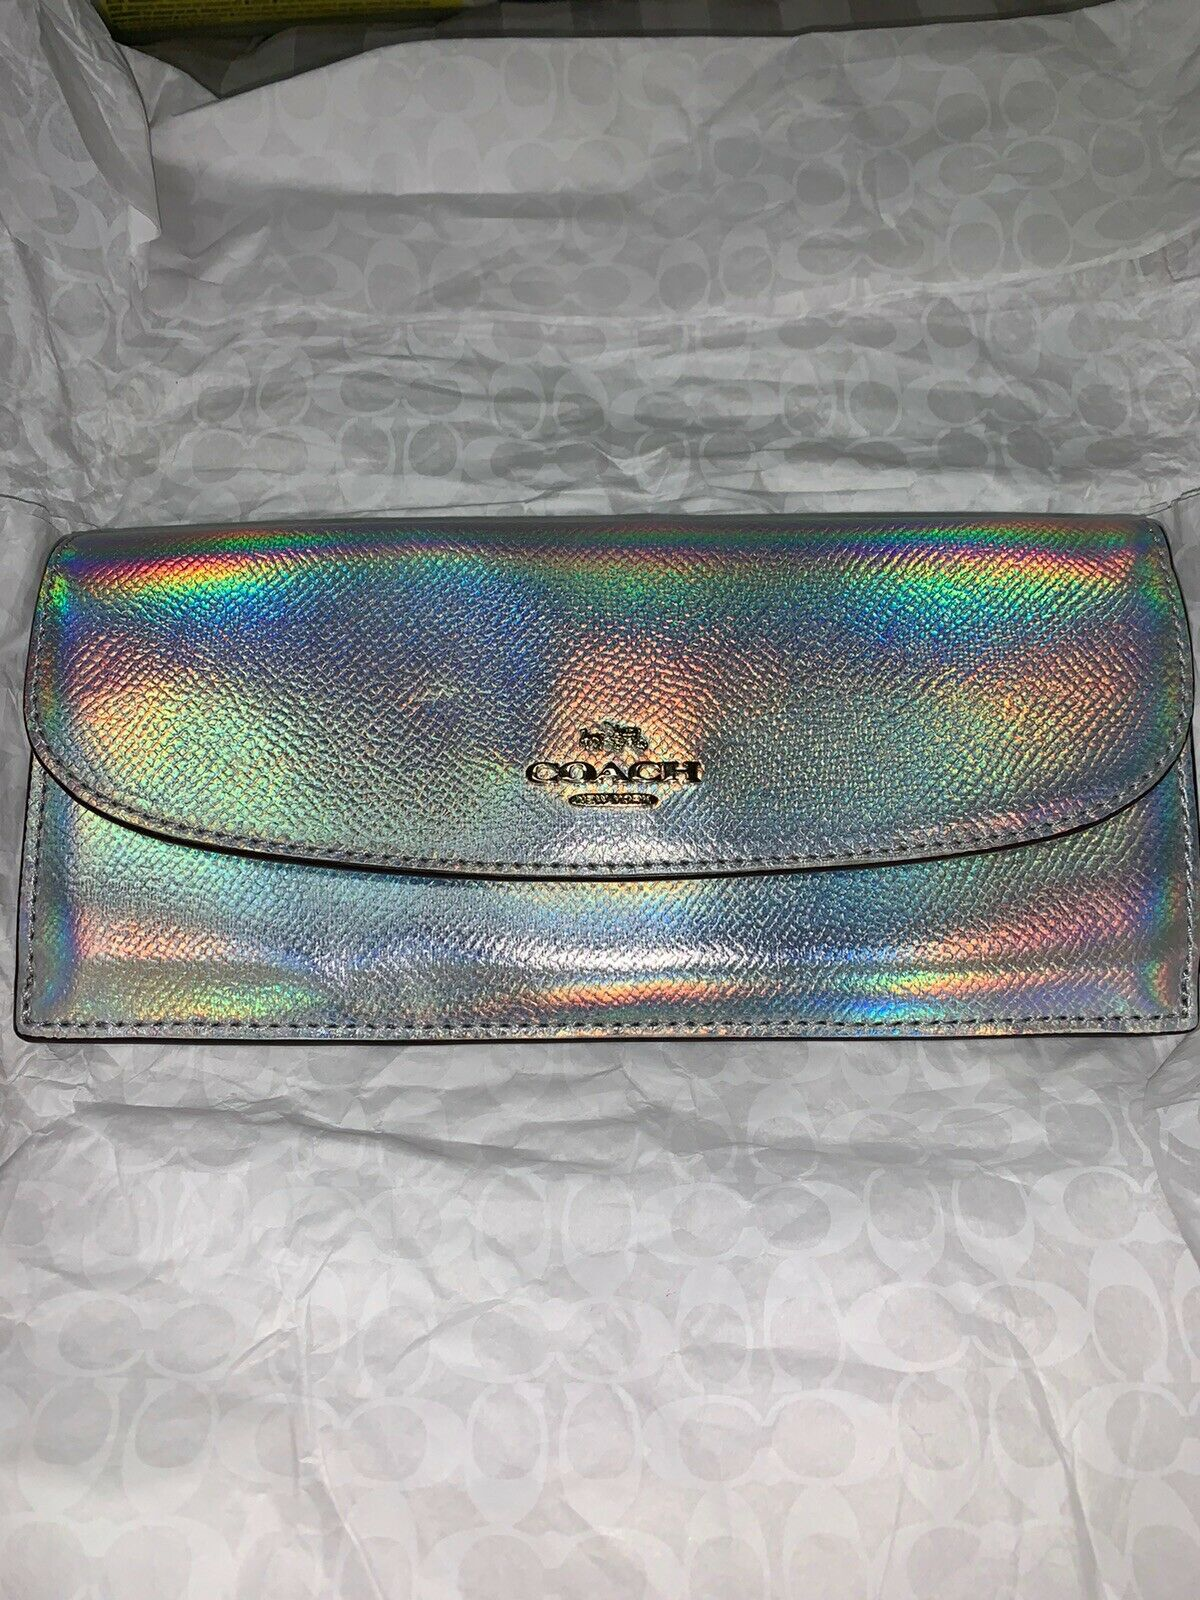 New Rare Coach Hologram Silver Iridescent Envelope Full-Sized Wallet